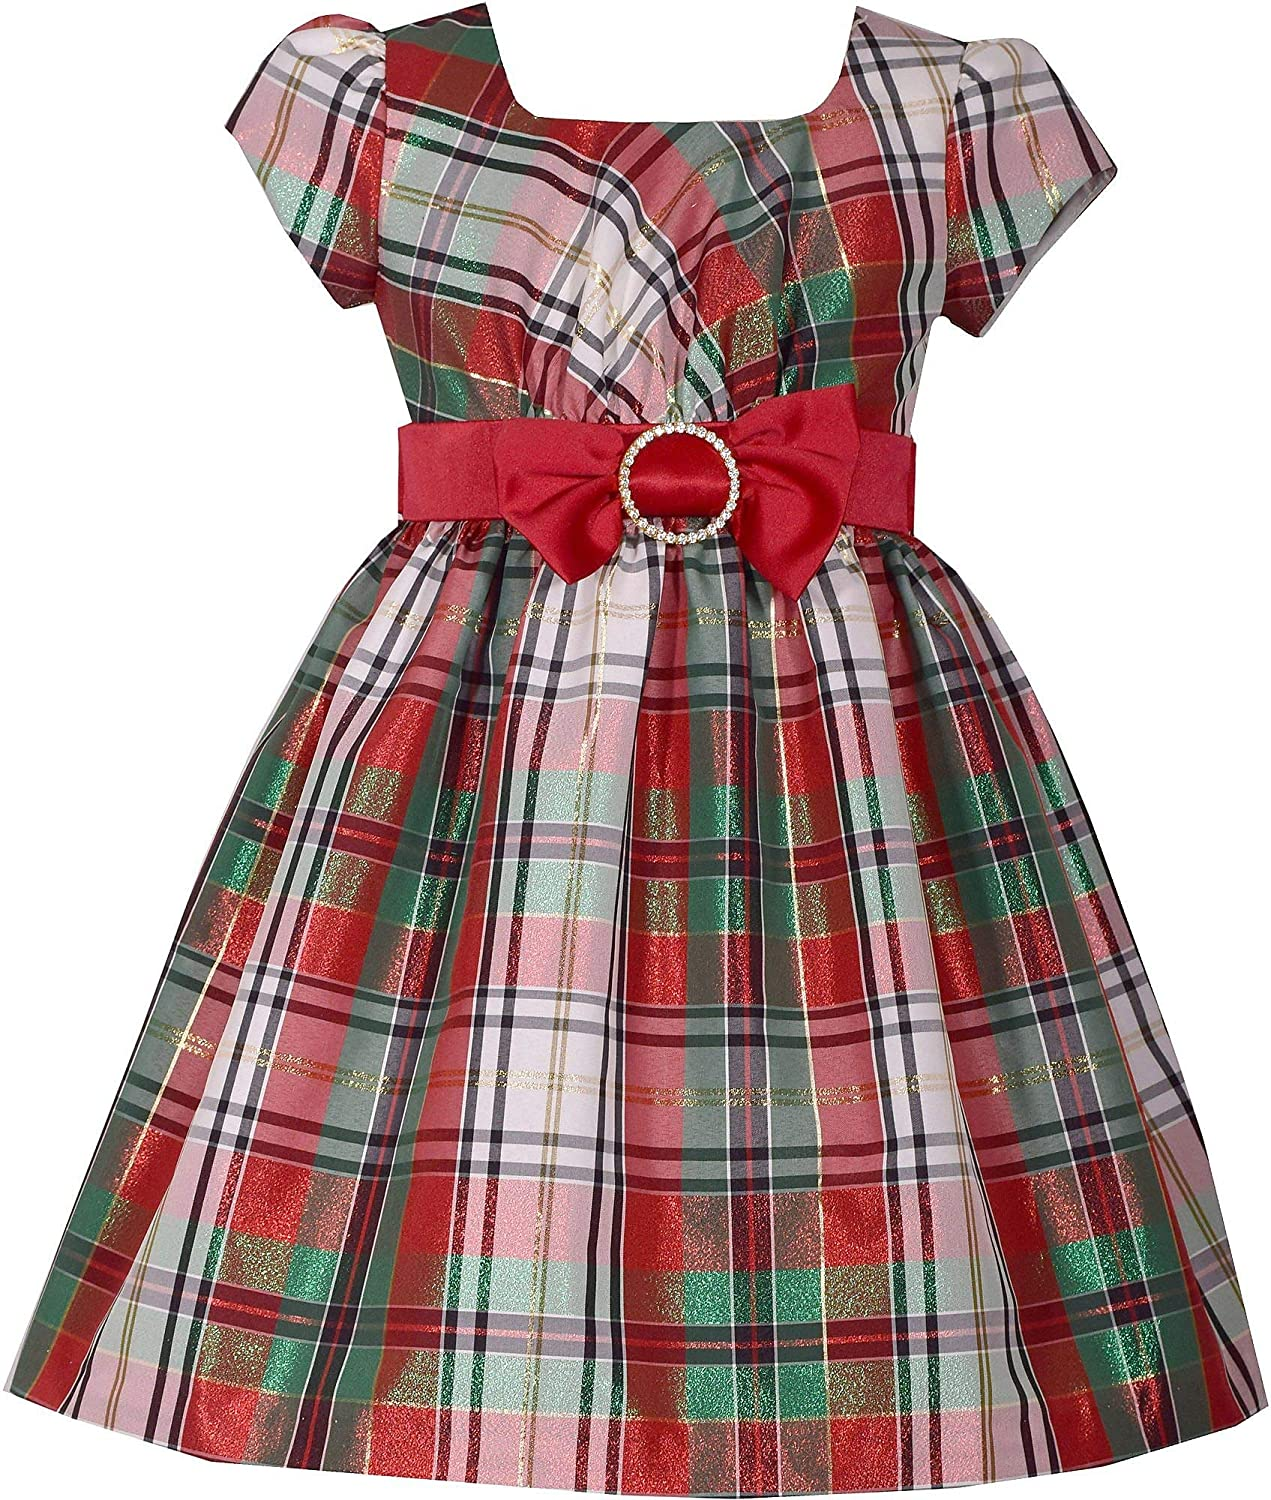 aa5f310fec Amazon.com  Bonnie Jean Short Sleeve Christmas Dress with Red and White  Plaid and Bow at Waist  Clothing